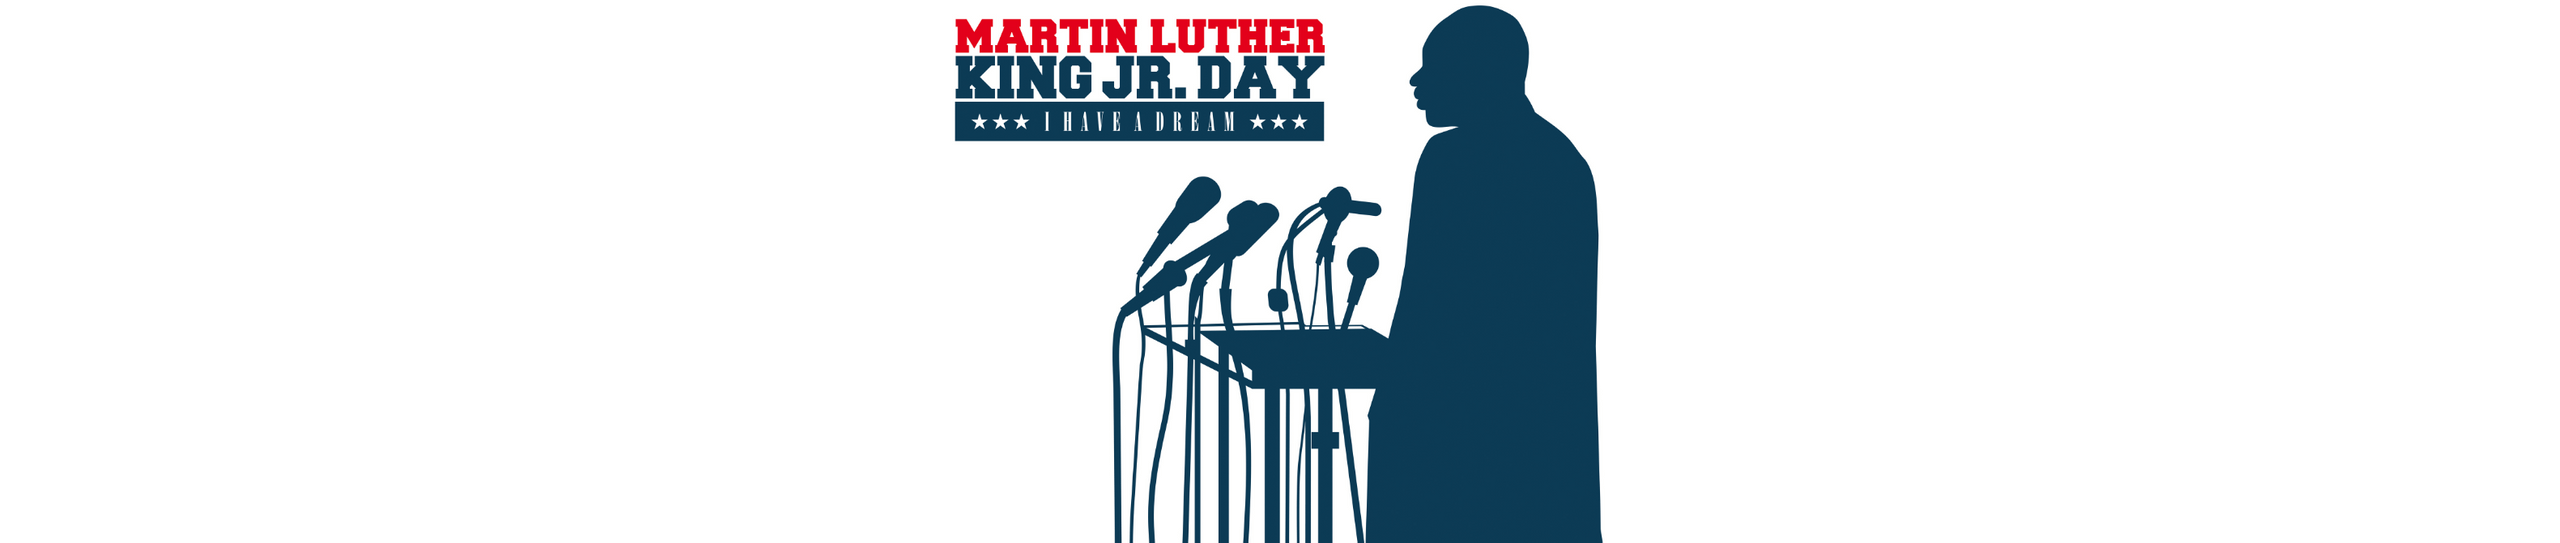 An illustration of Martin Luther King on the podium for Martin Luther King day